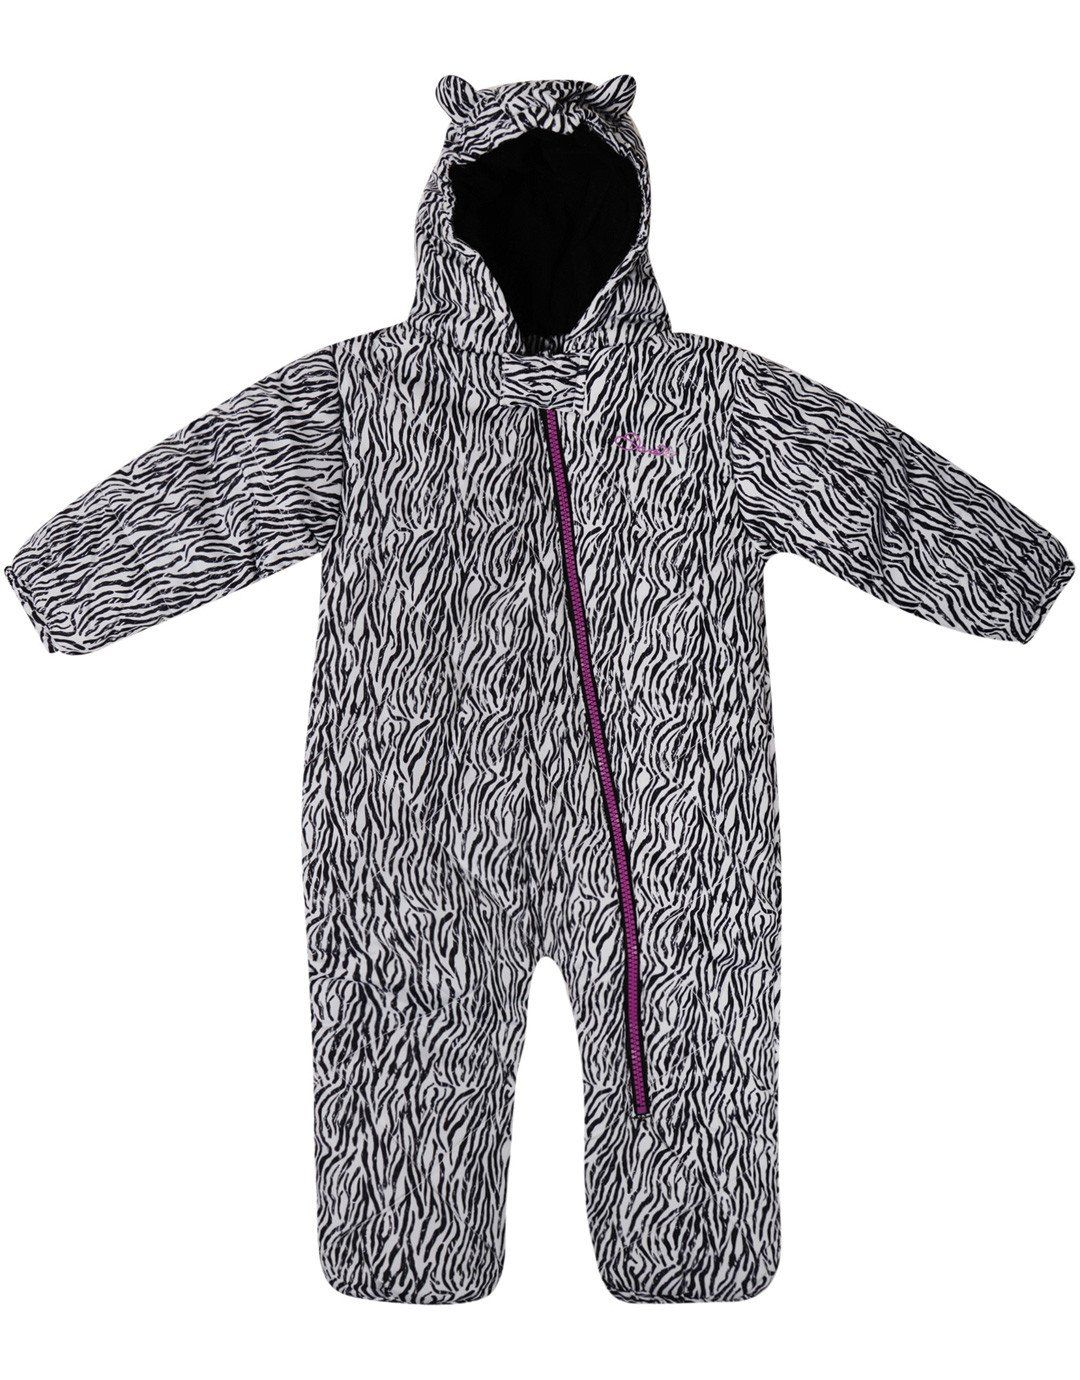 c659c430df29 Girls Break The Ice Snowsuit - Black White Zebra - 18 - 24 Months ...